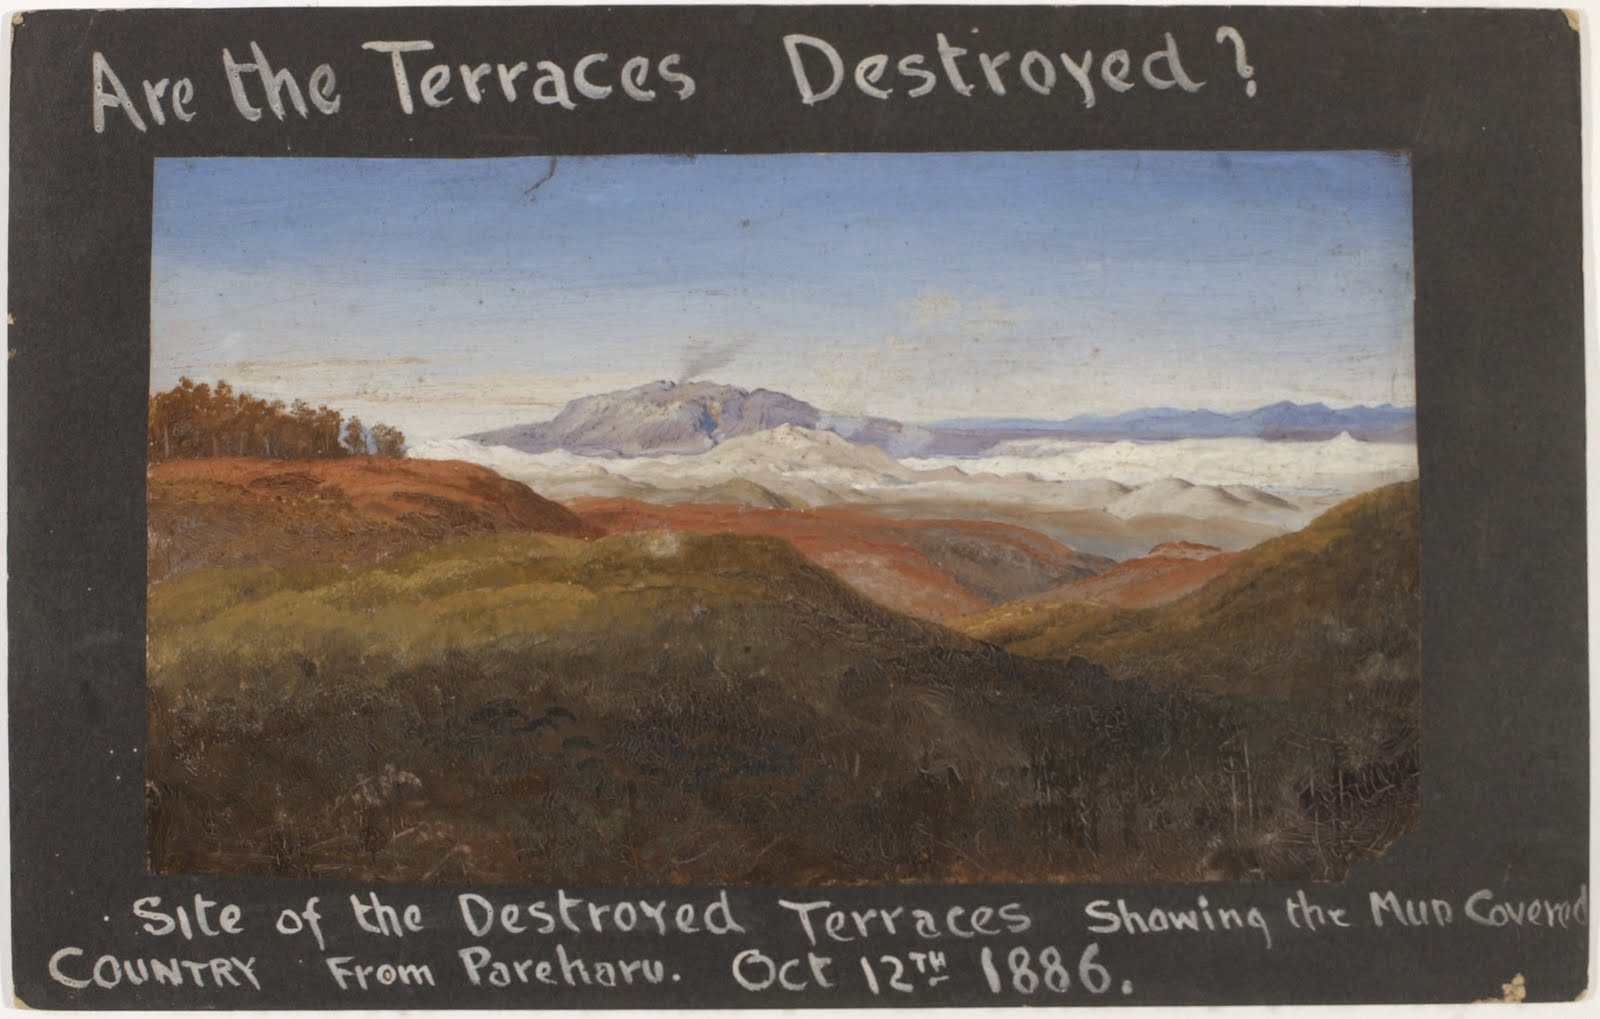 http://rfacdn.nz/artgallery/assets/media/blog-terraces-destroyed-2.jpg